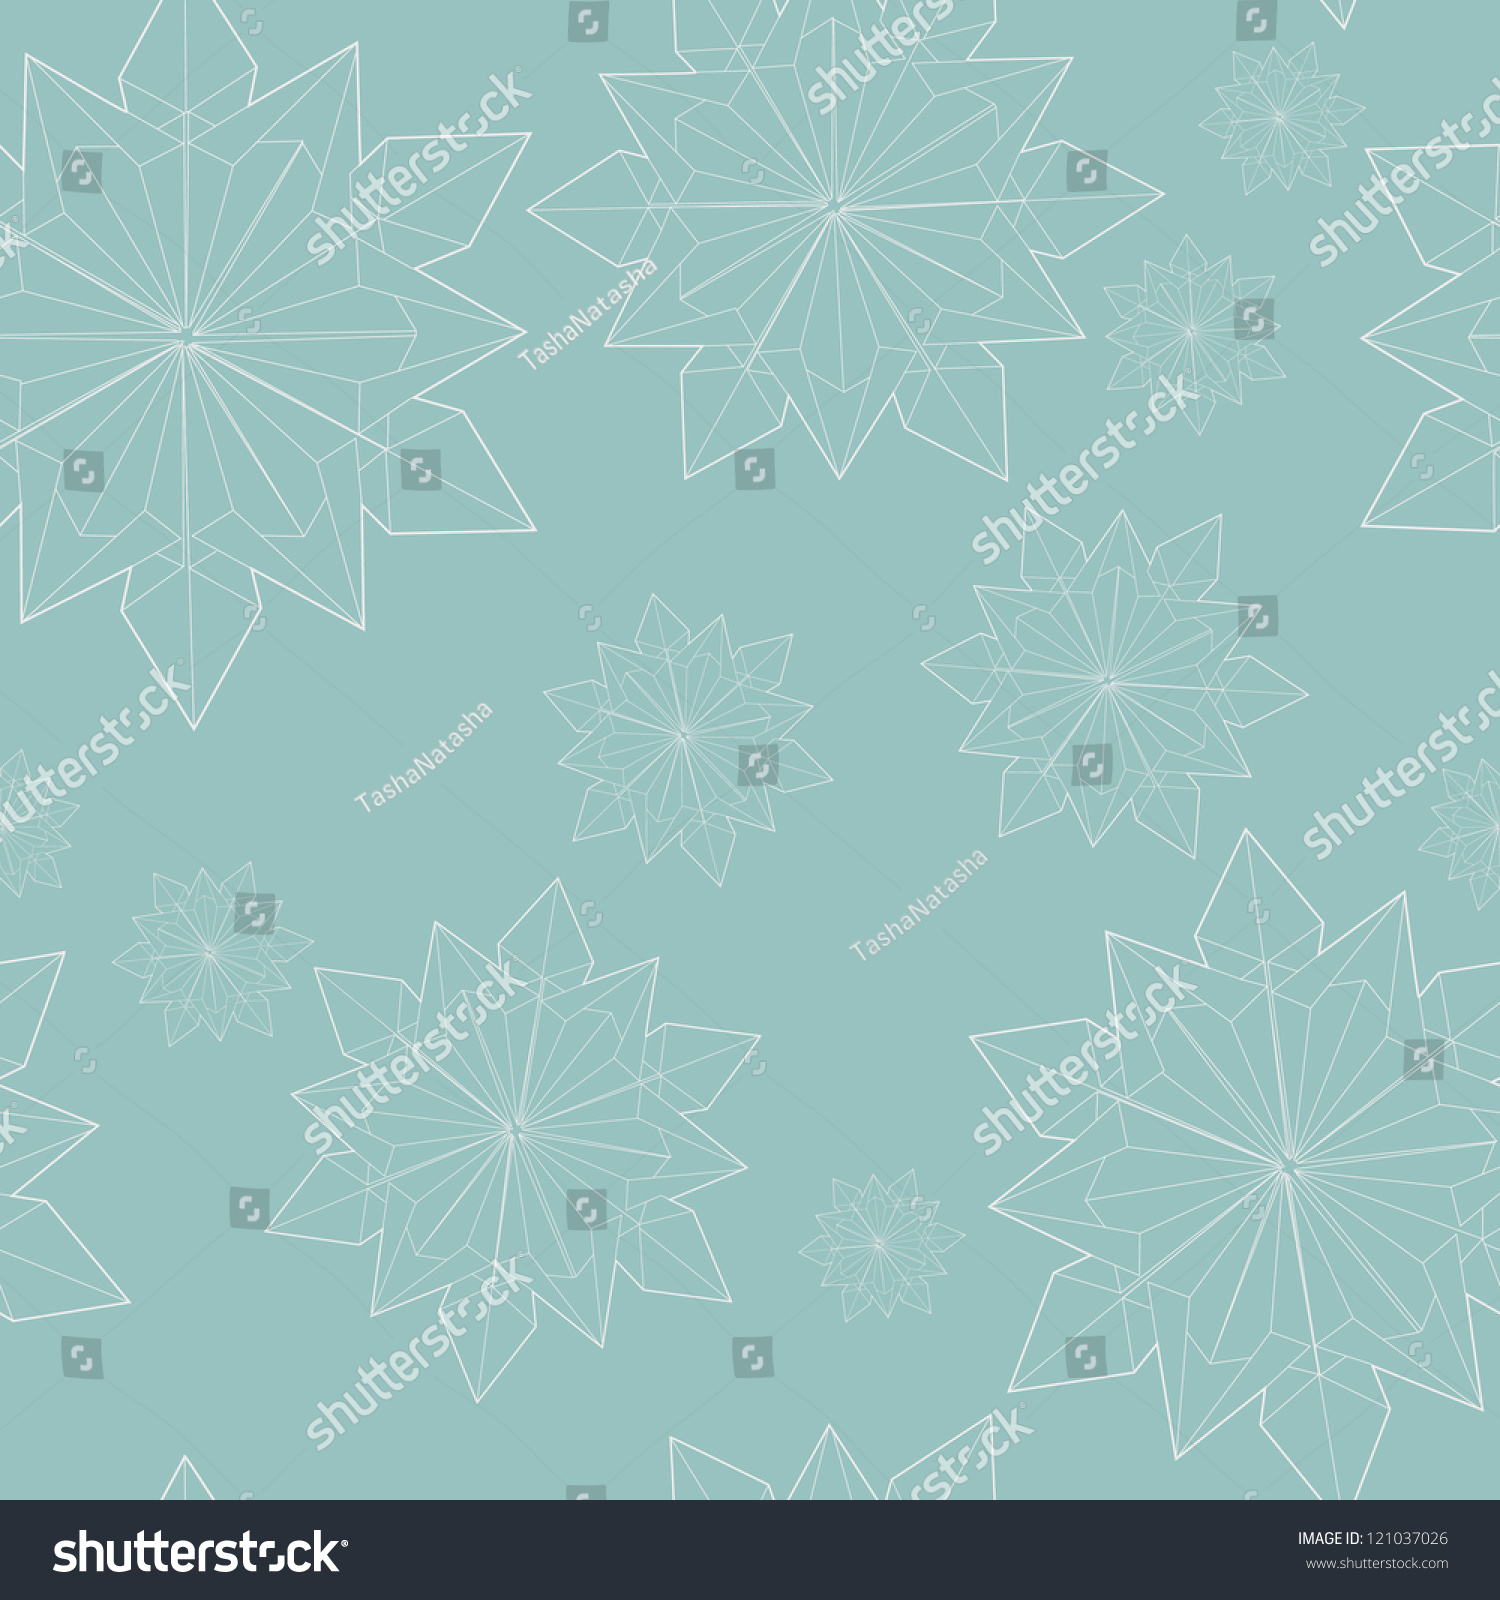 Winter Seamless Pattern With Origami Snowflakes Outlines Ez Canvas